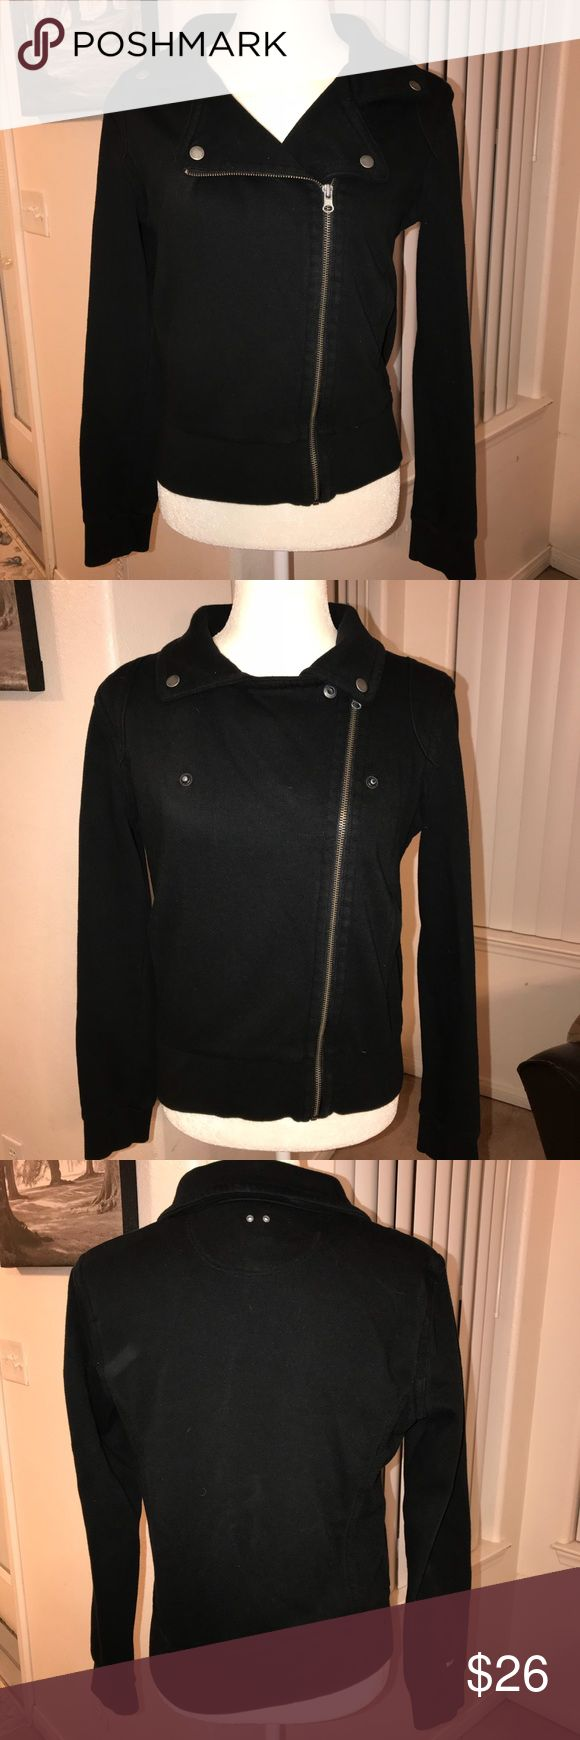 Converse Zip-up Jacket Black, minor fading if any.  Size Medium.  Can be worn more than one way. Zipper off center by design.  Good used condition Converse Jackets & Coats